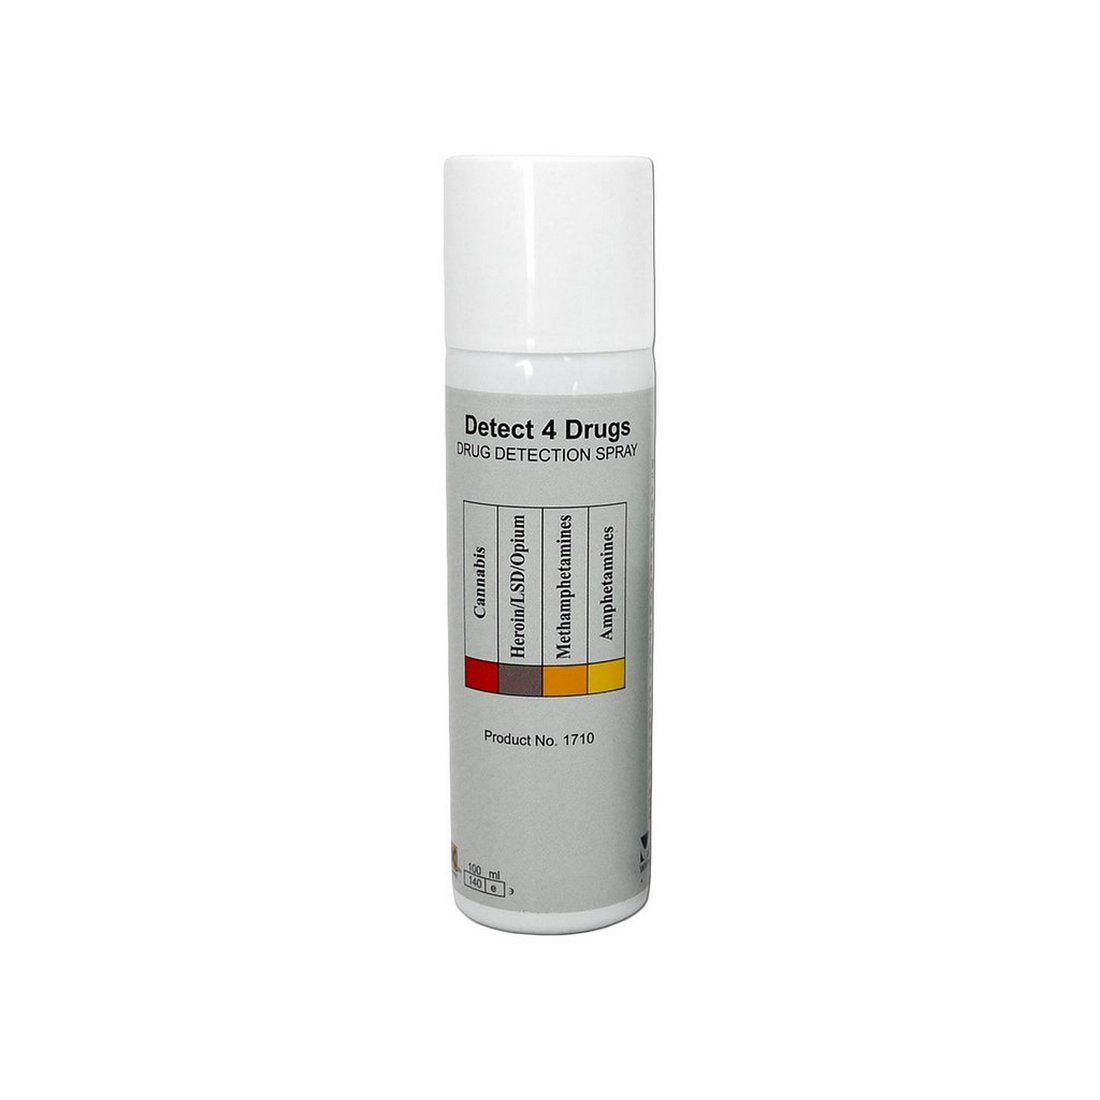 Mistral MIS-01710 D4D (Regular) Drug Detection Aerosol